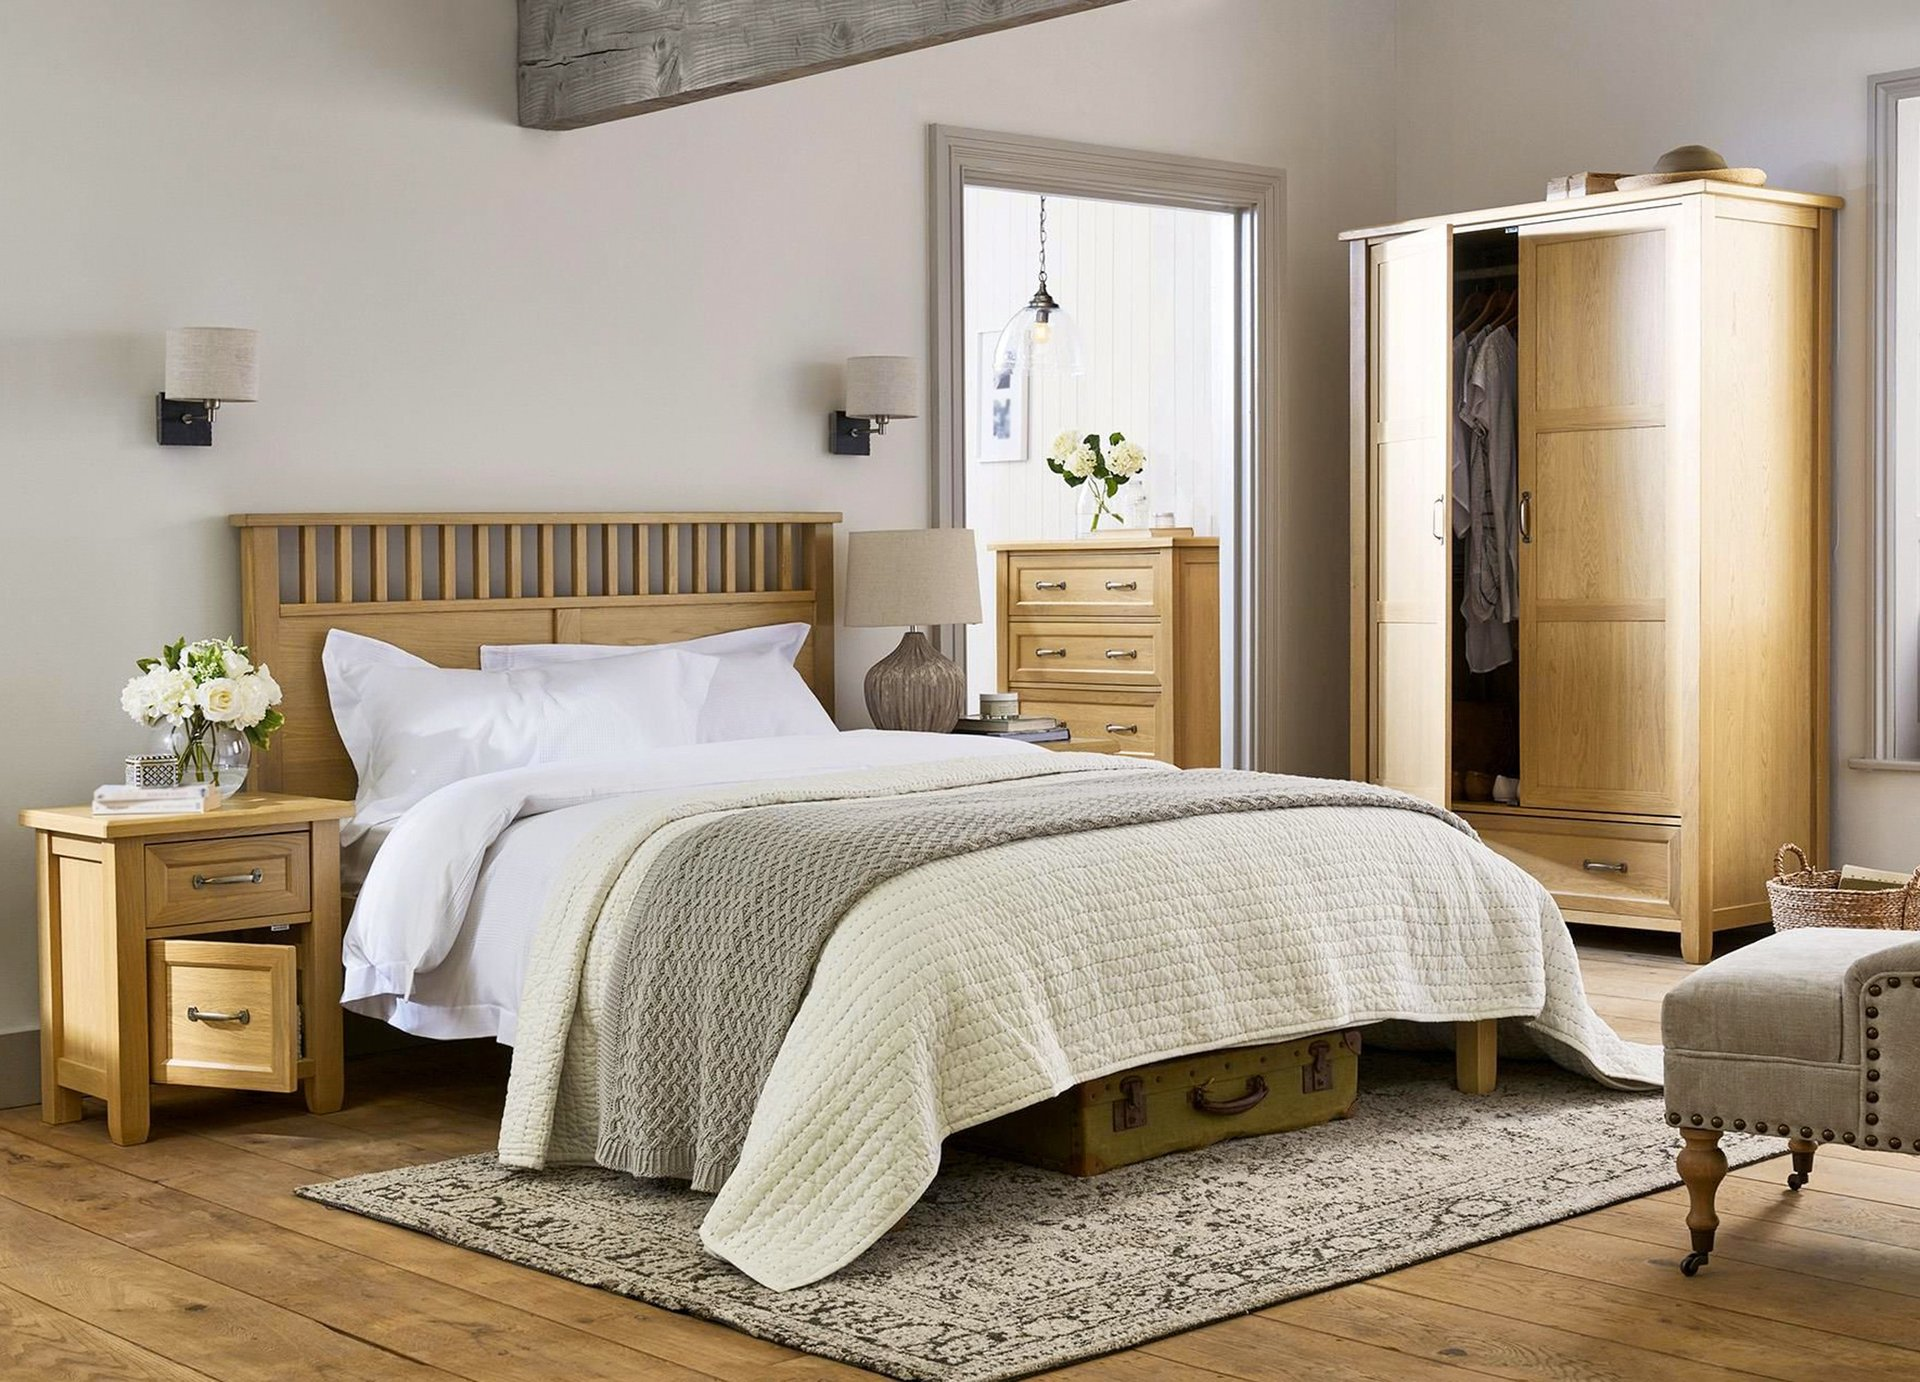 custom bedroom furniture karmal skillington nashville tn 17345 | shutterstock 615994484